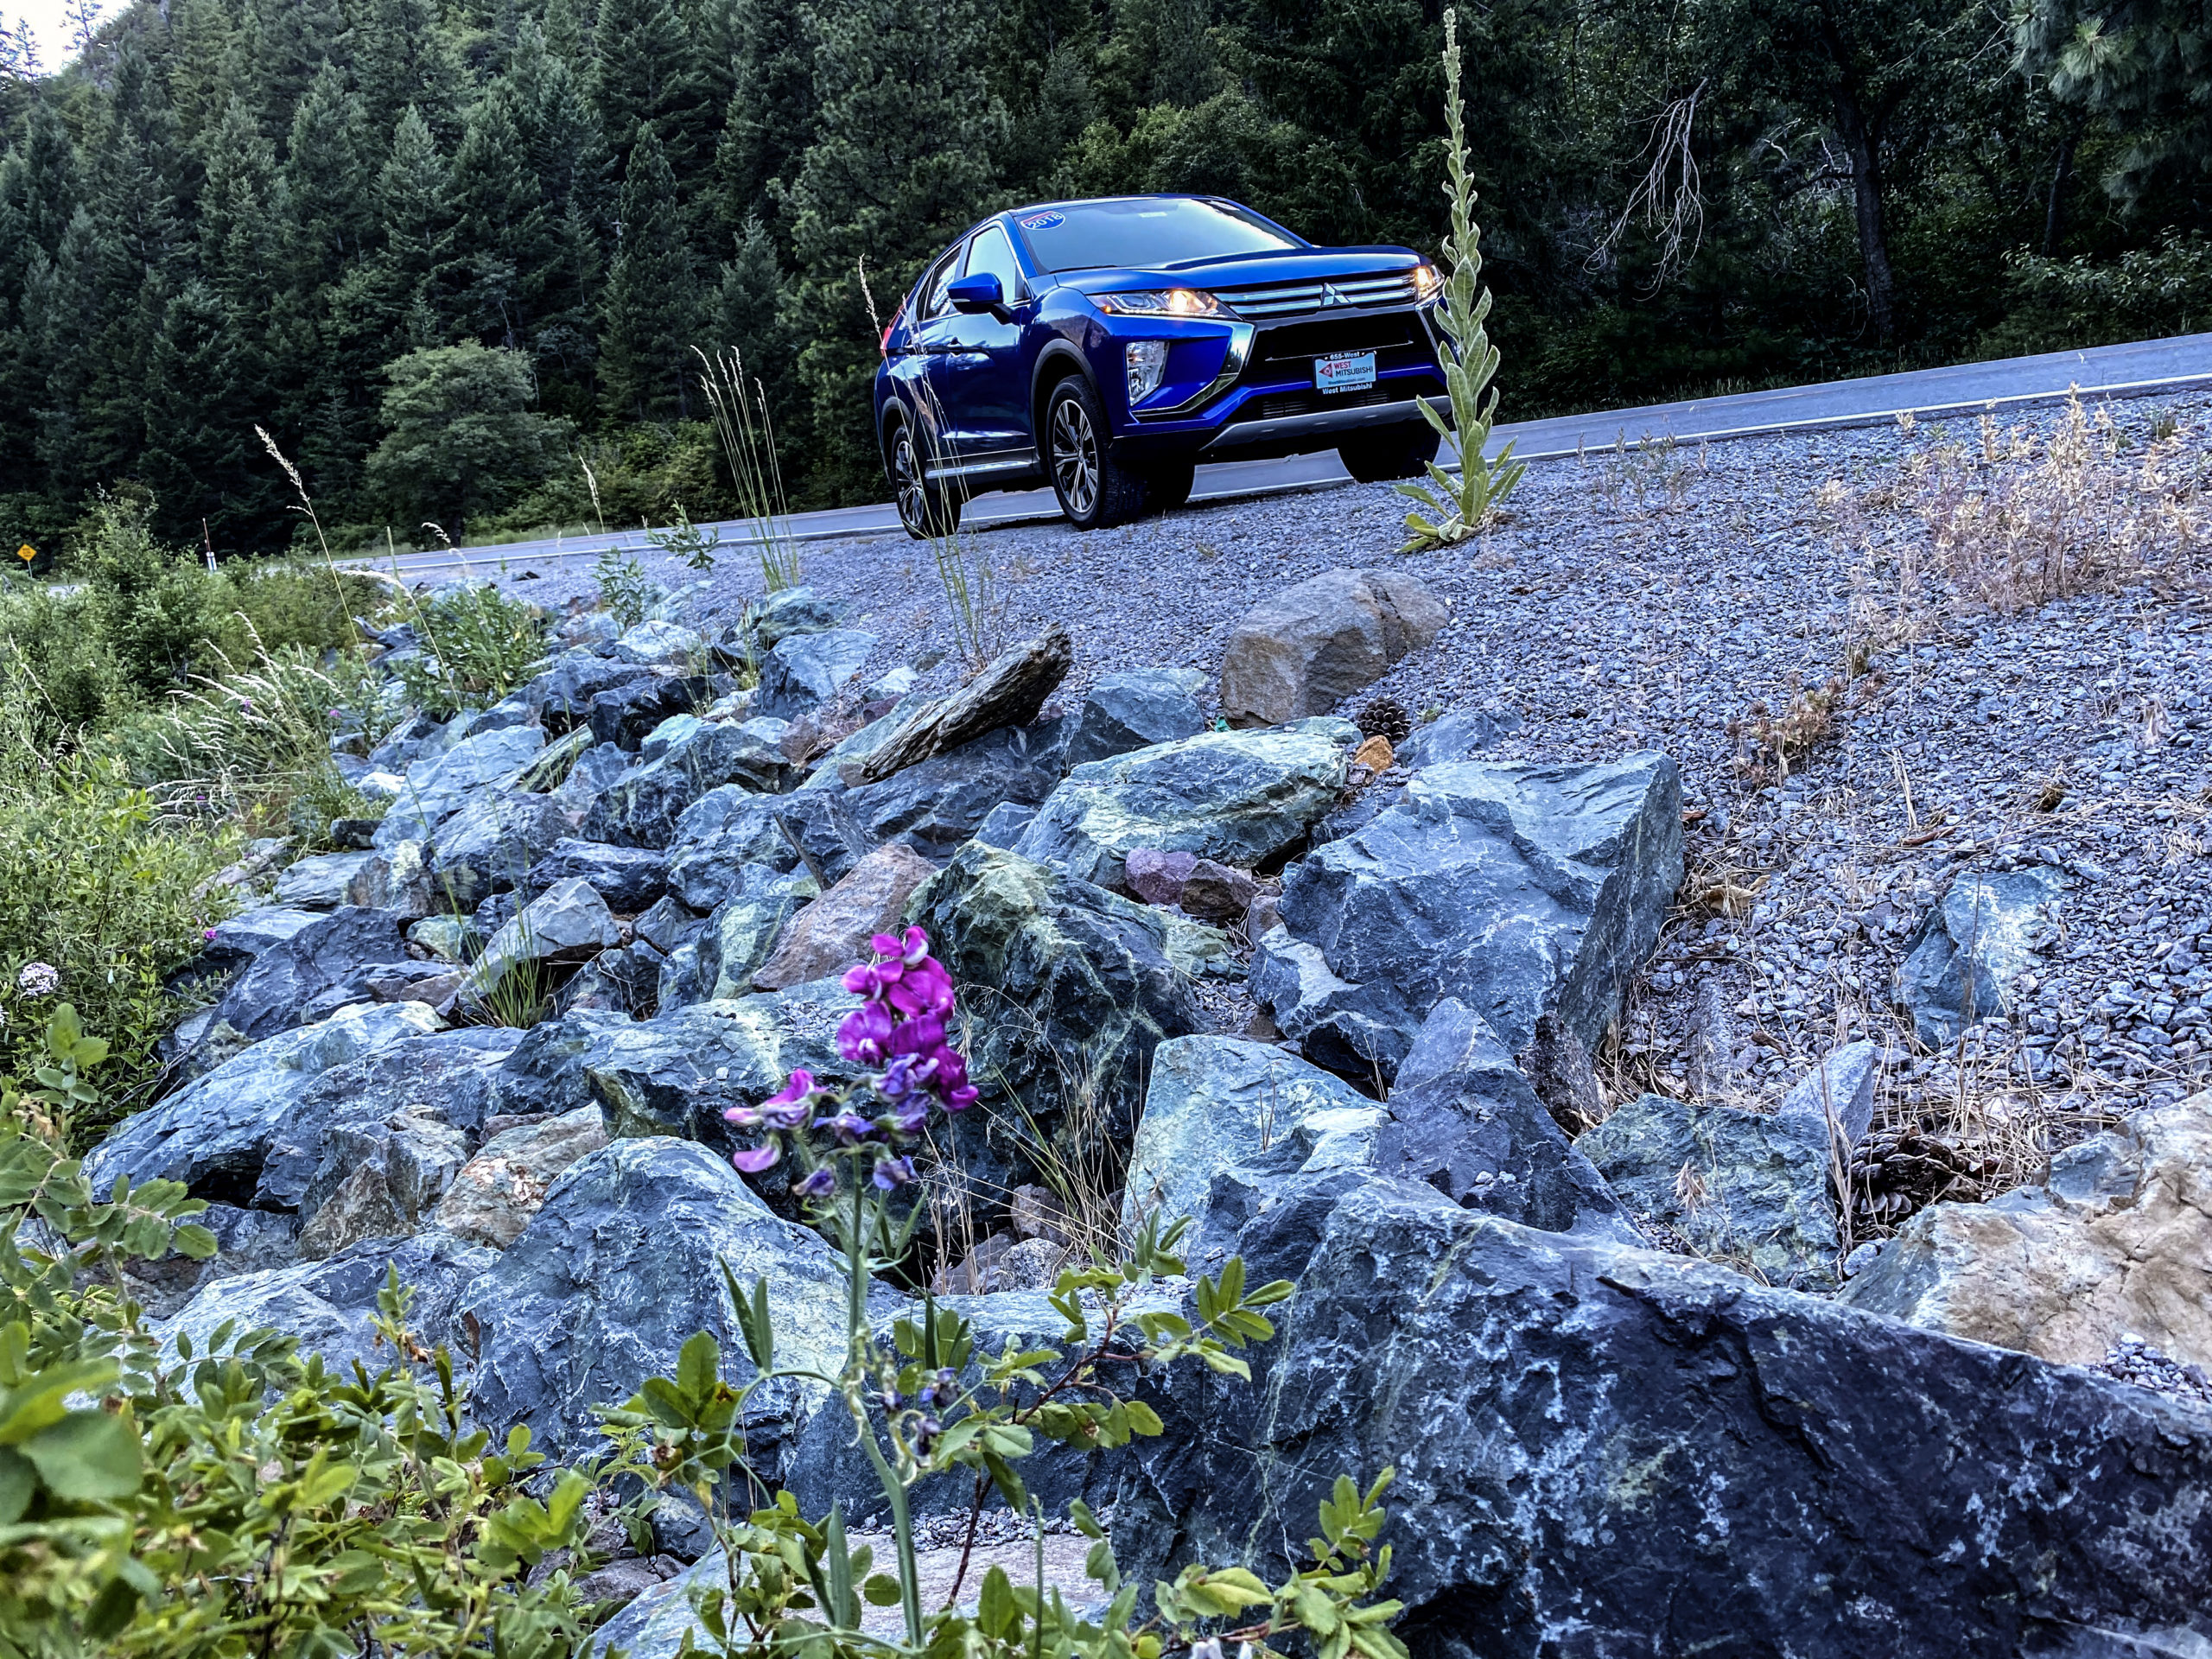 2018 Mitsubishi Eclipse Cross in the Feather River Canyon